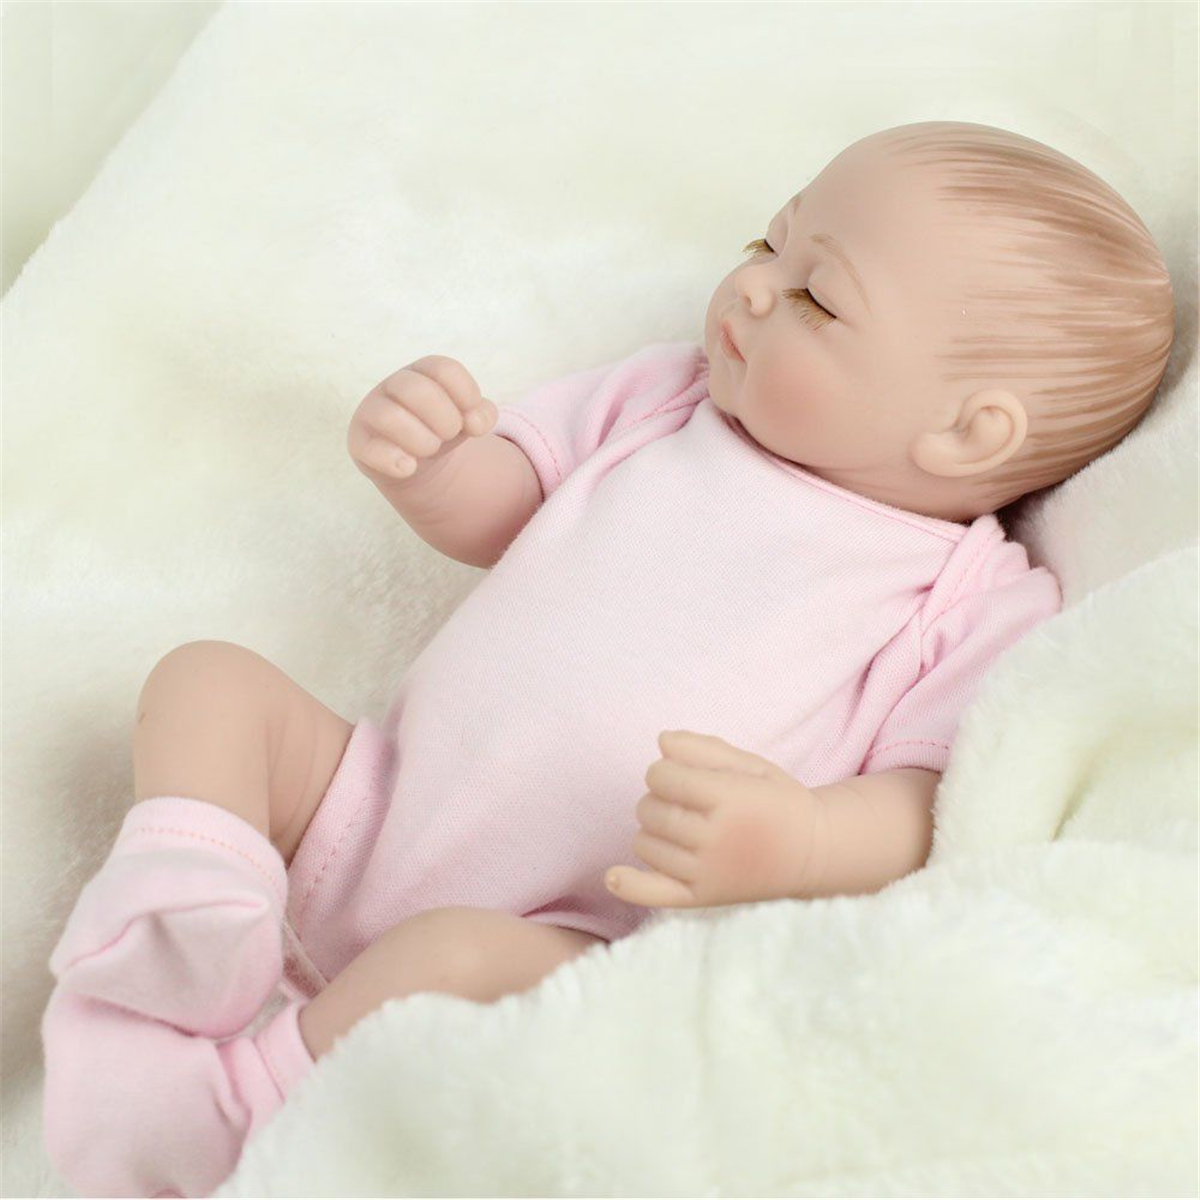 2Pcs Twins Reborn Baby Doll Silicone Handmade Lifelike Baby Play House Bath Toy